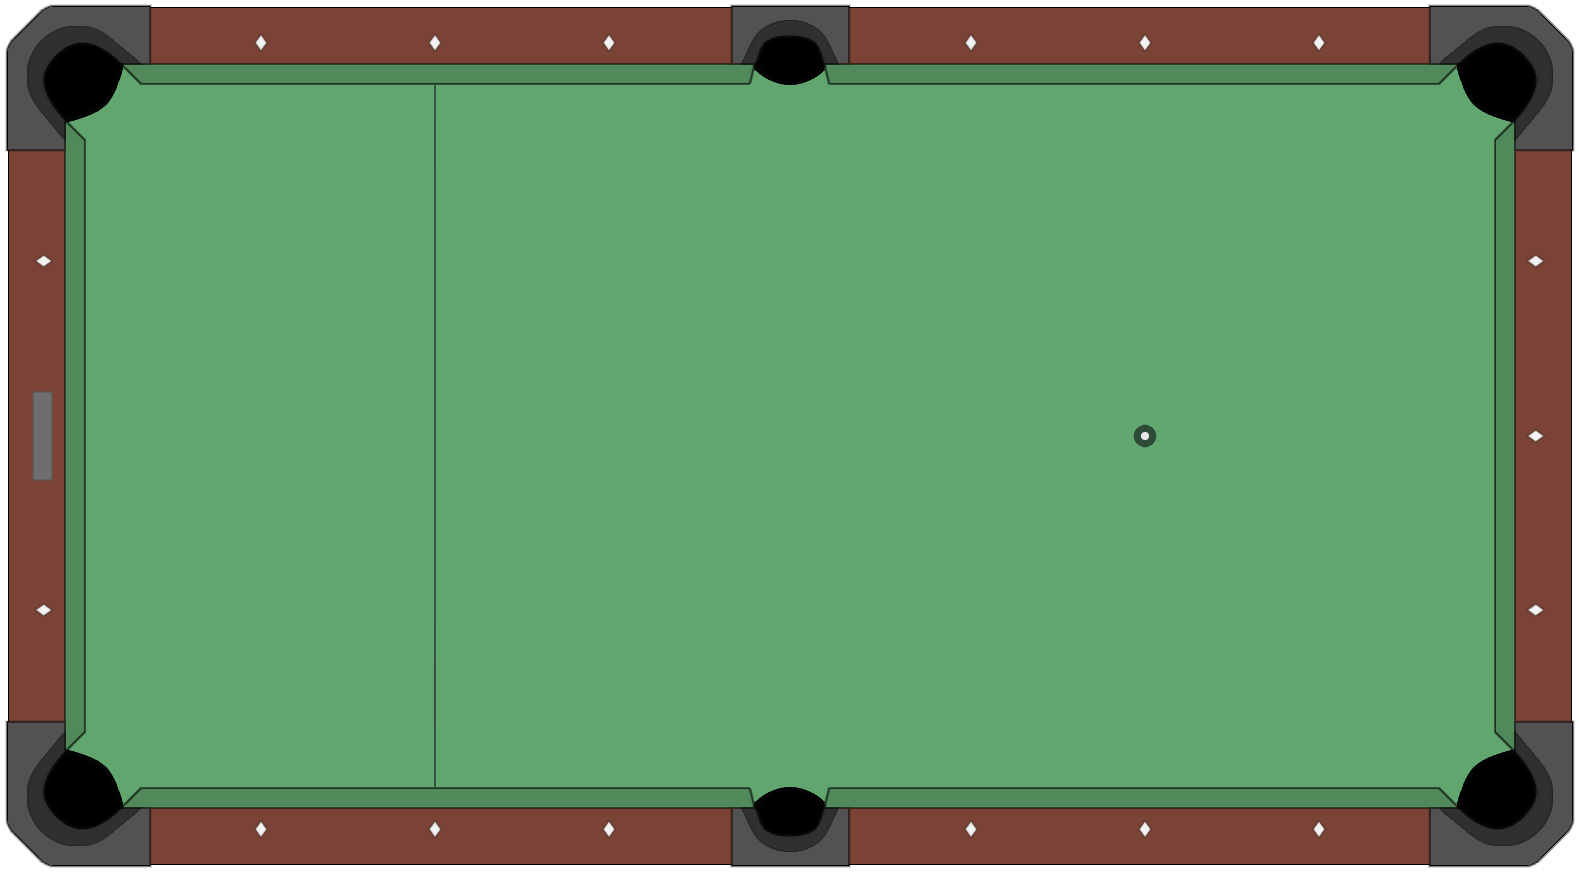 hight resolution of file american style pool table diagram empty png wikimedia commons file american style pool